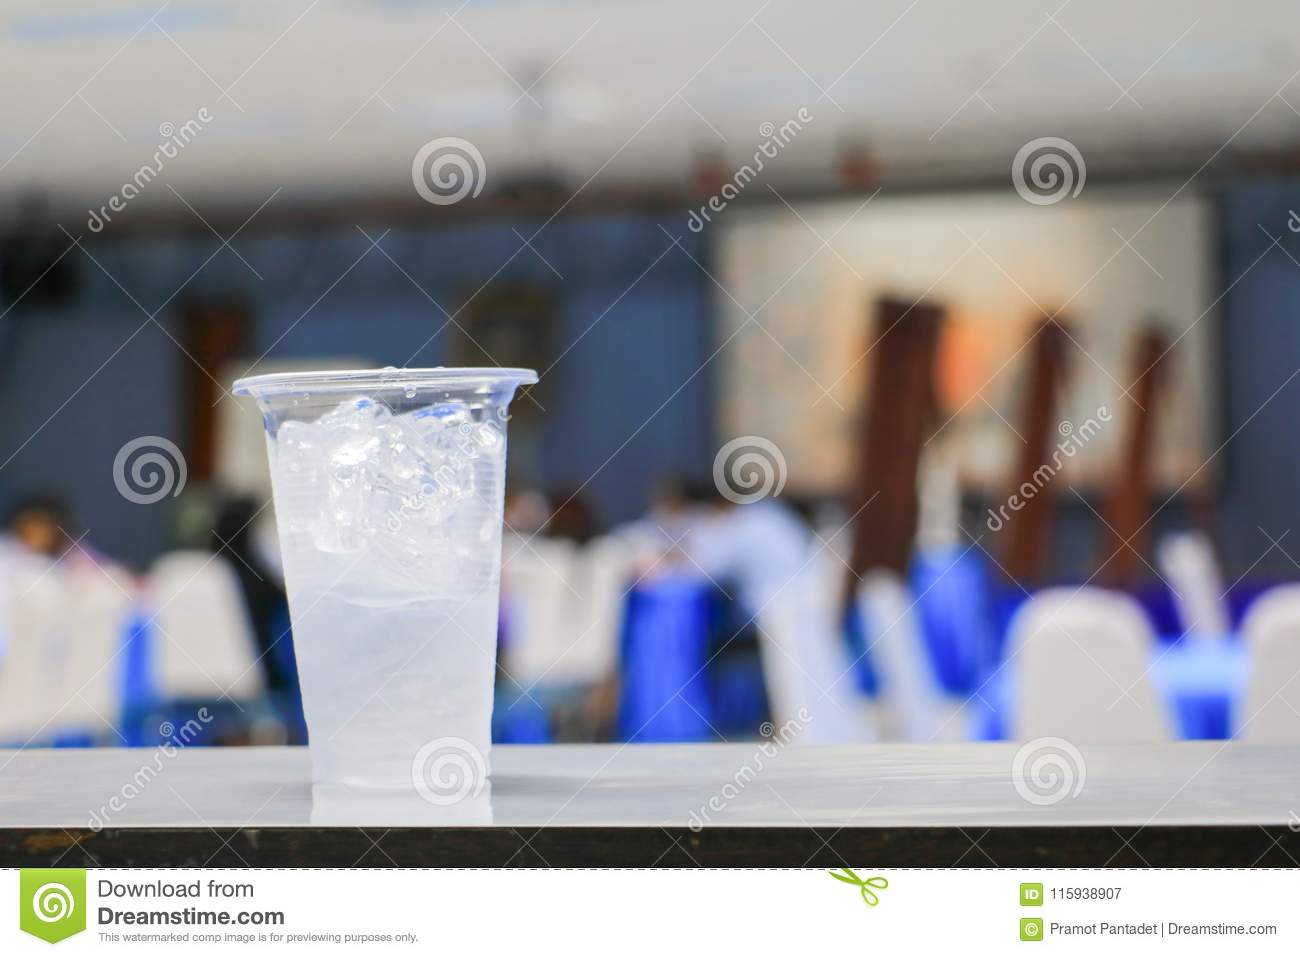 Ice water in glass-plastic in seminar conference room background. select focus with shallow depth of field